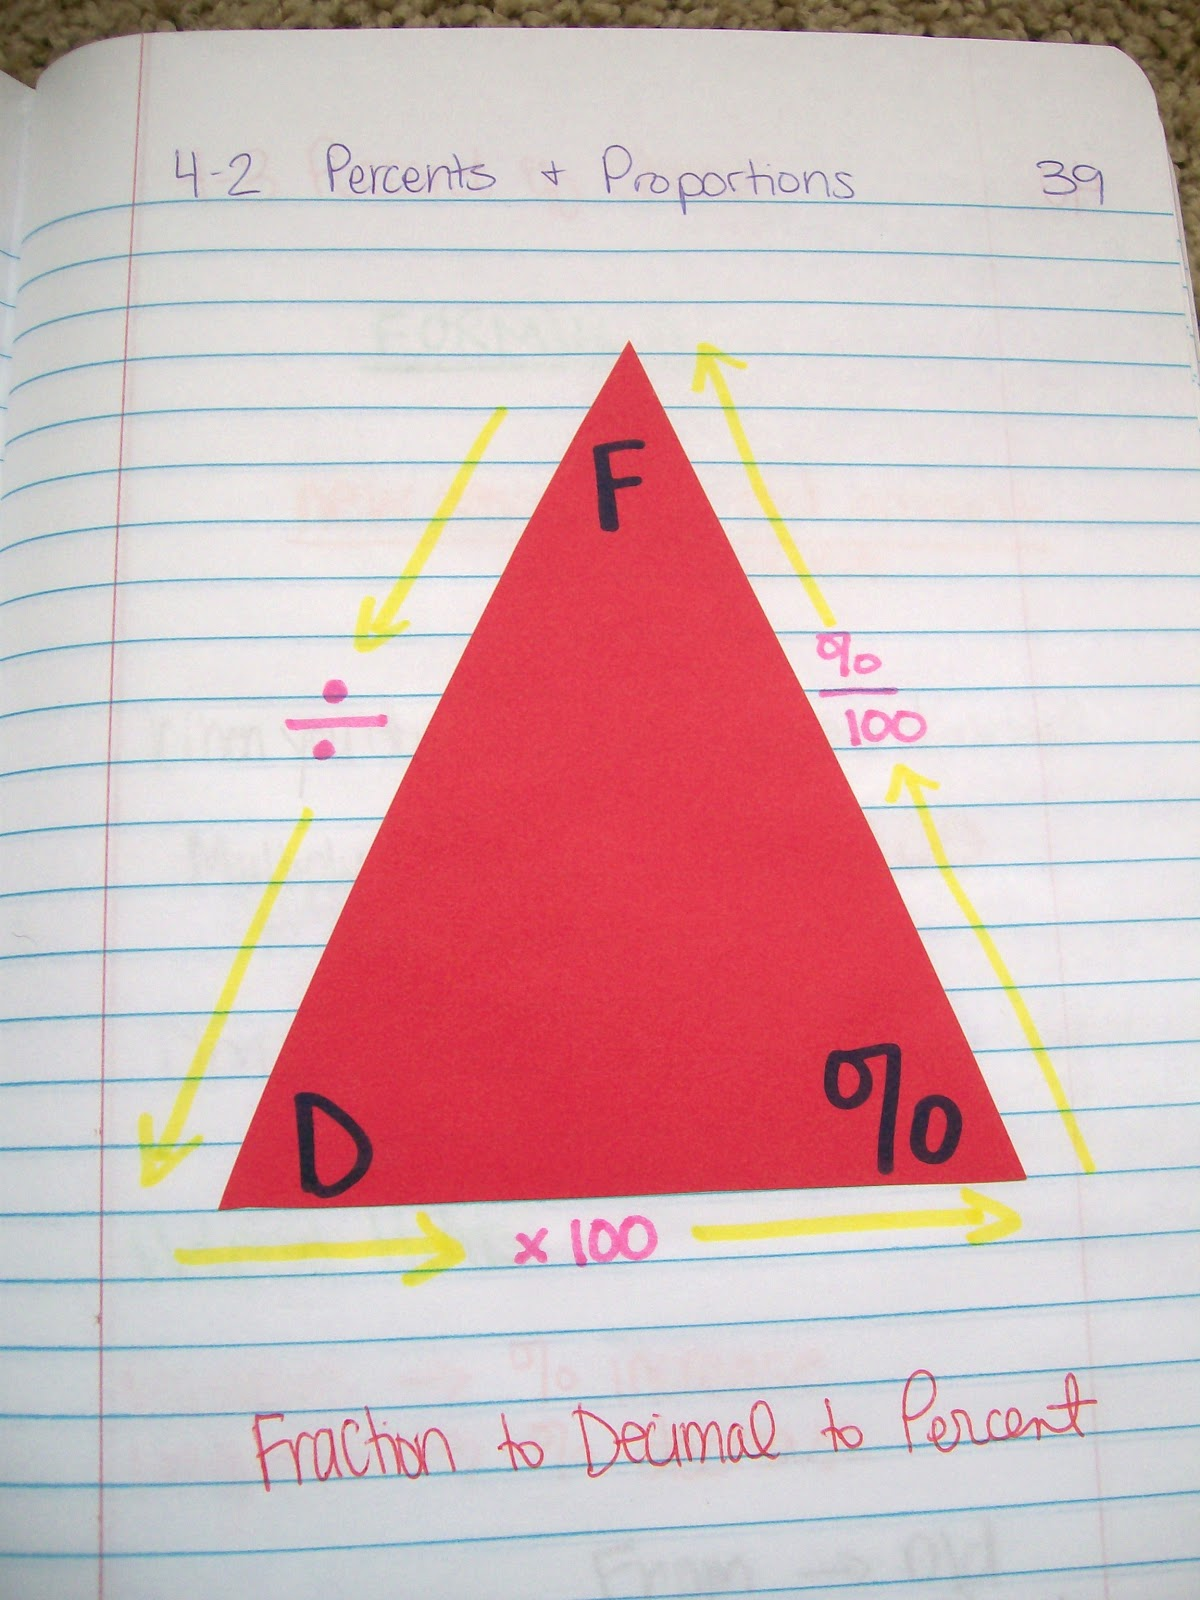 ... Finding Missing Angles Worksheet. on problems with similar triangles